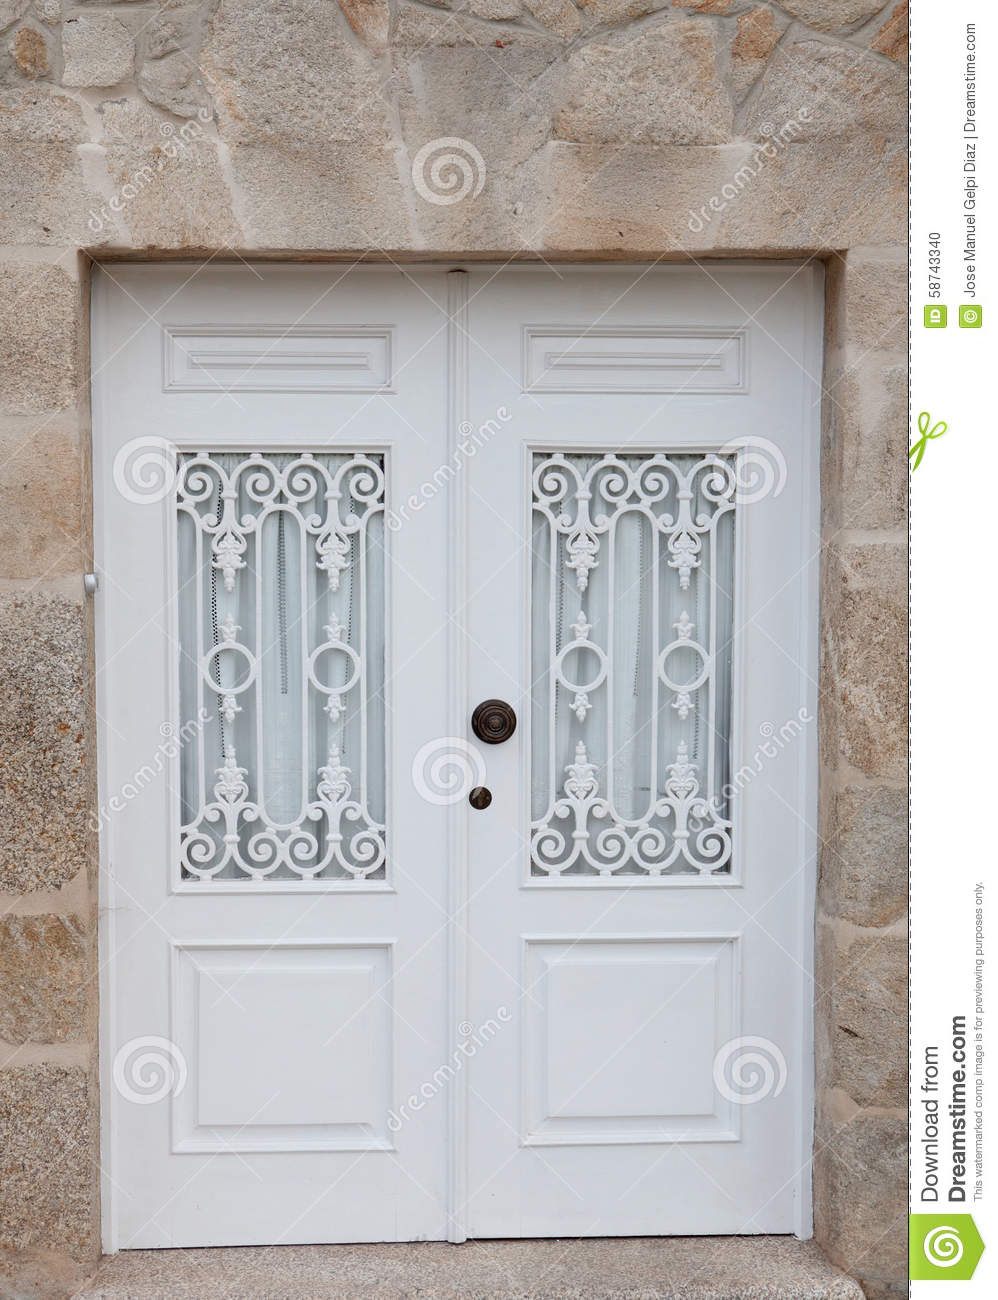 Beautiful White Door Stock Photo Image Of Gate, Entry